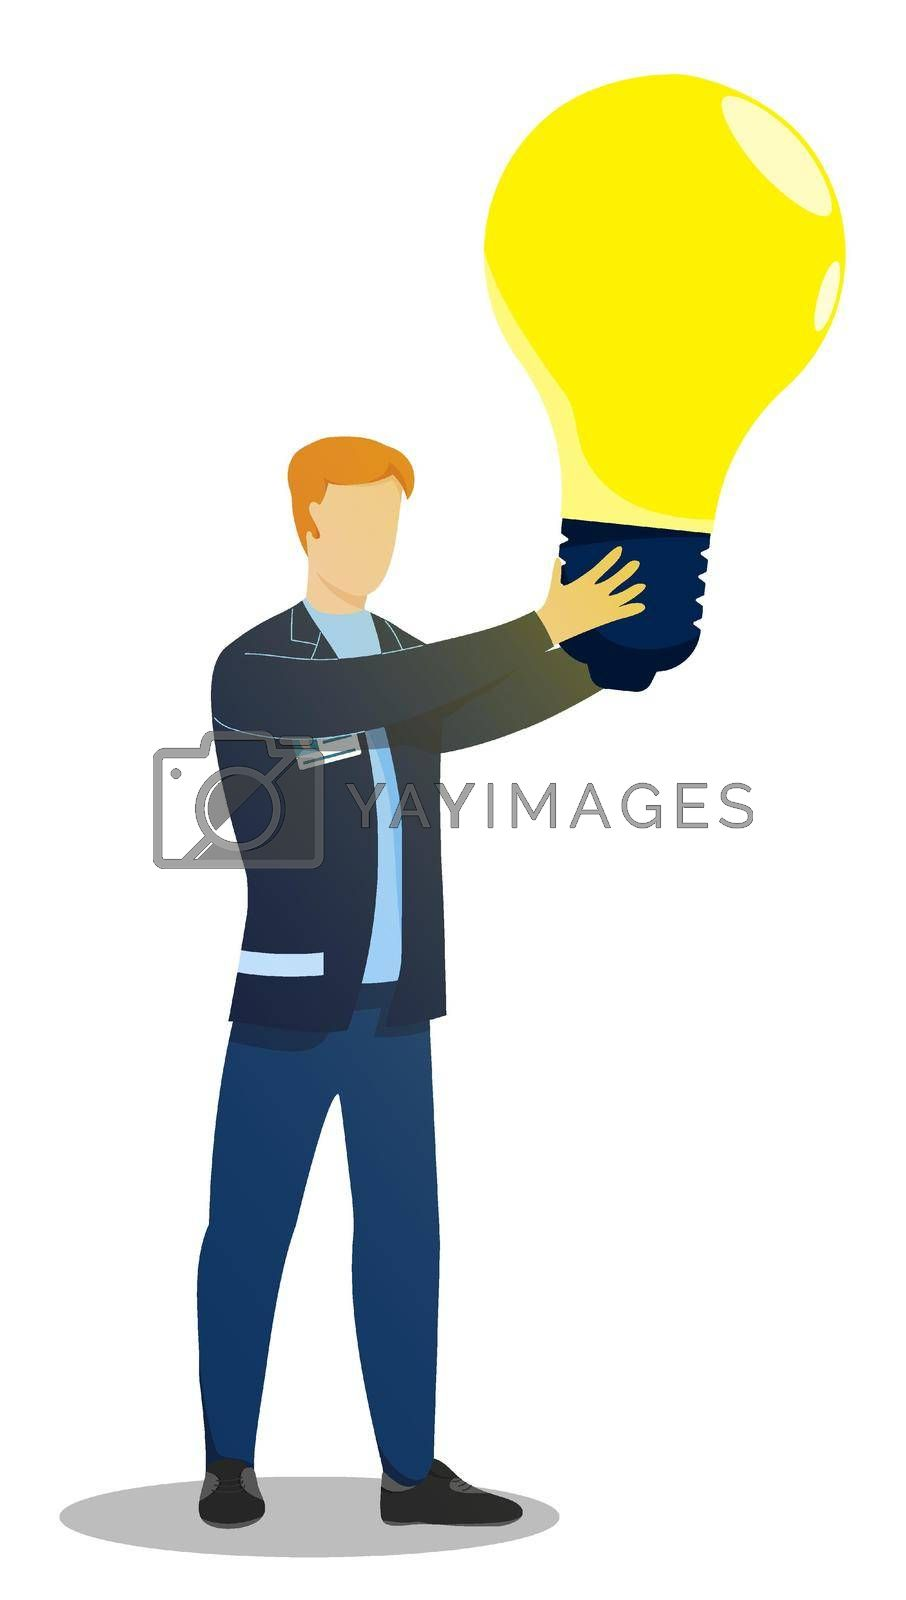 man, creative worker holding large glowing light bulb in his hands. New idea, creative thought. Business brainstorming to solve problem. Vector isolated on white background